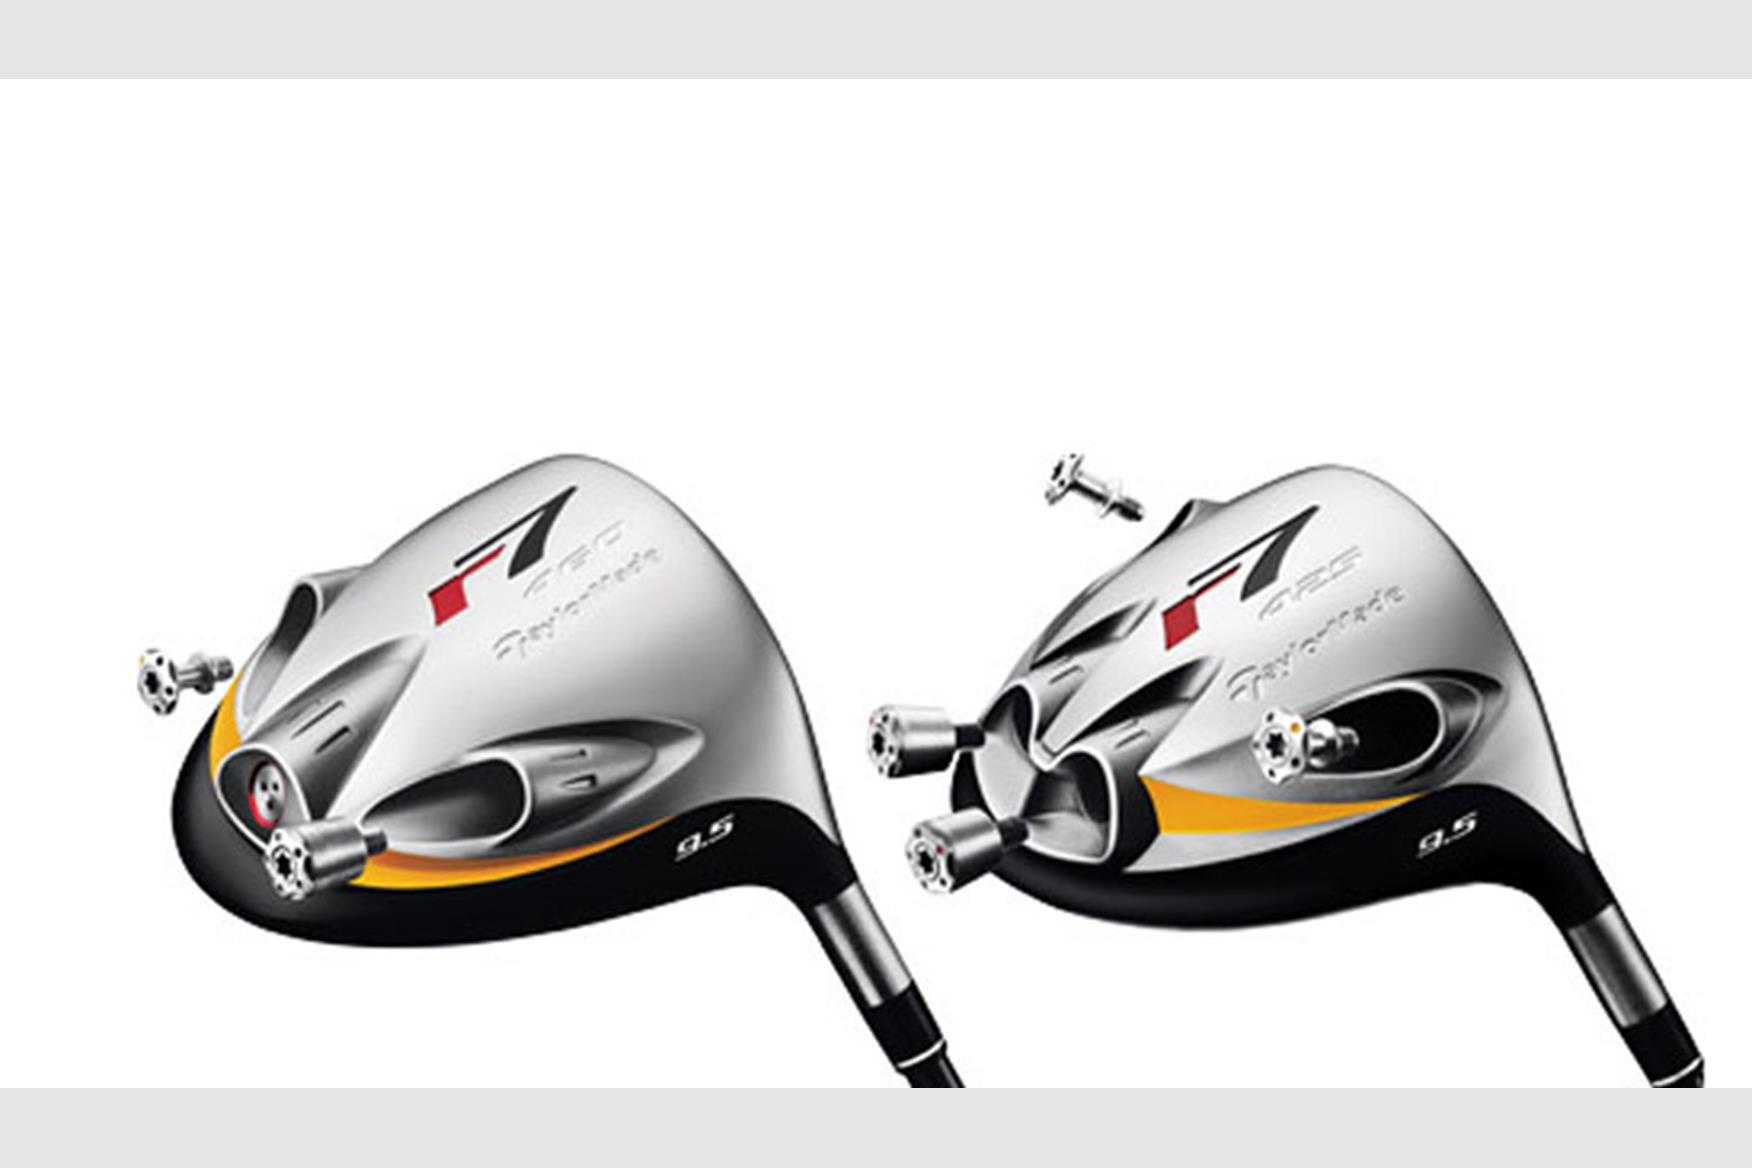 Taylormade golf drivers priority designs.